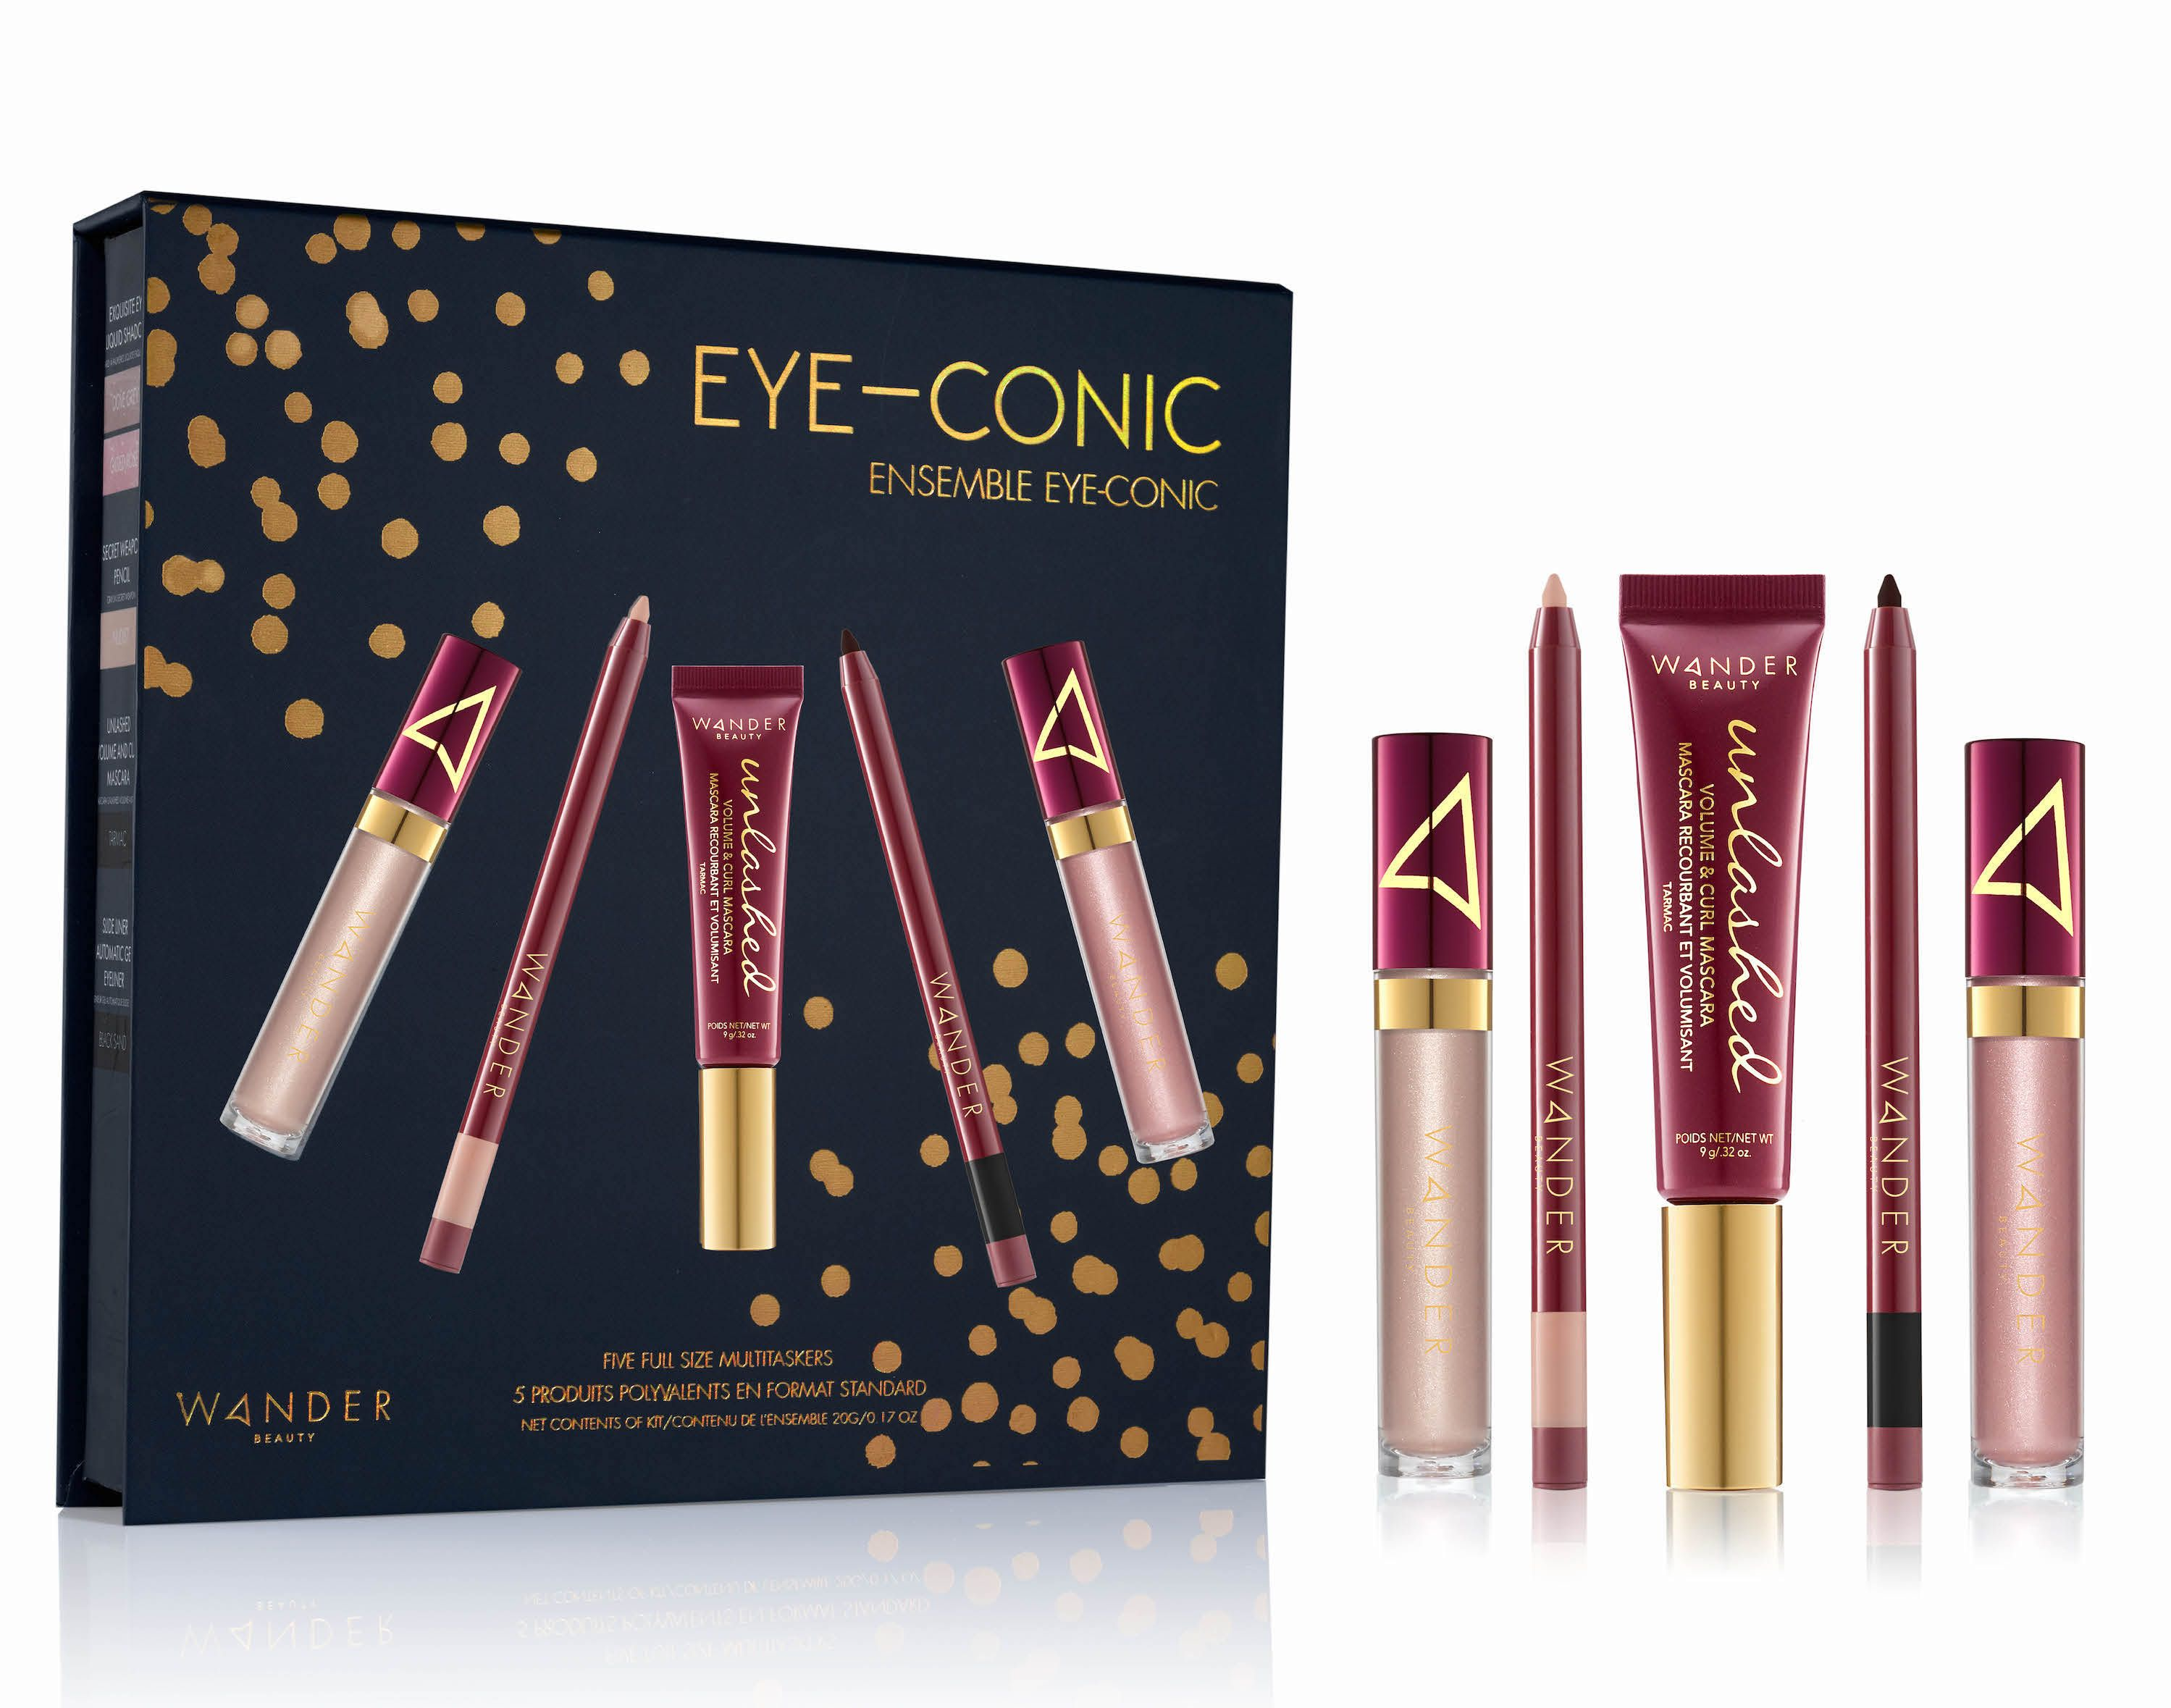 Wander Beauty Eye-Conic set